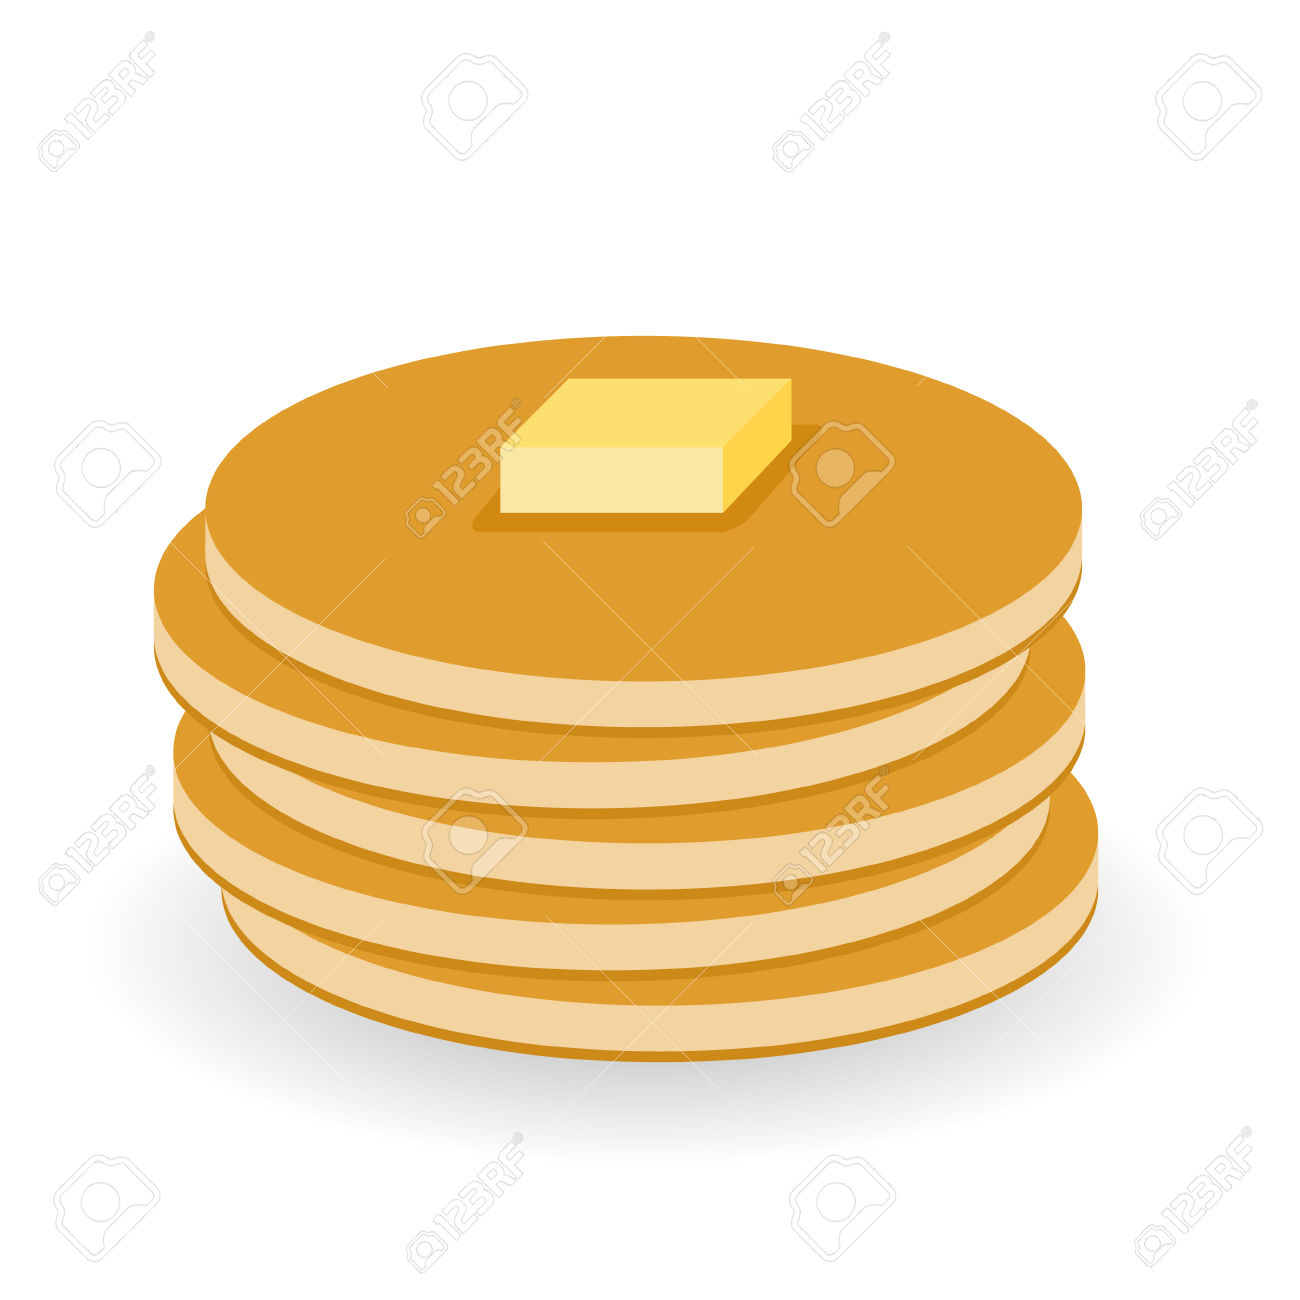 1000 images about Pancake Breakfast on Pinterest | Blue berry, Adoption and Clip art